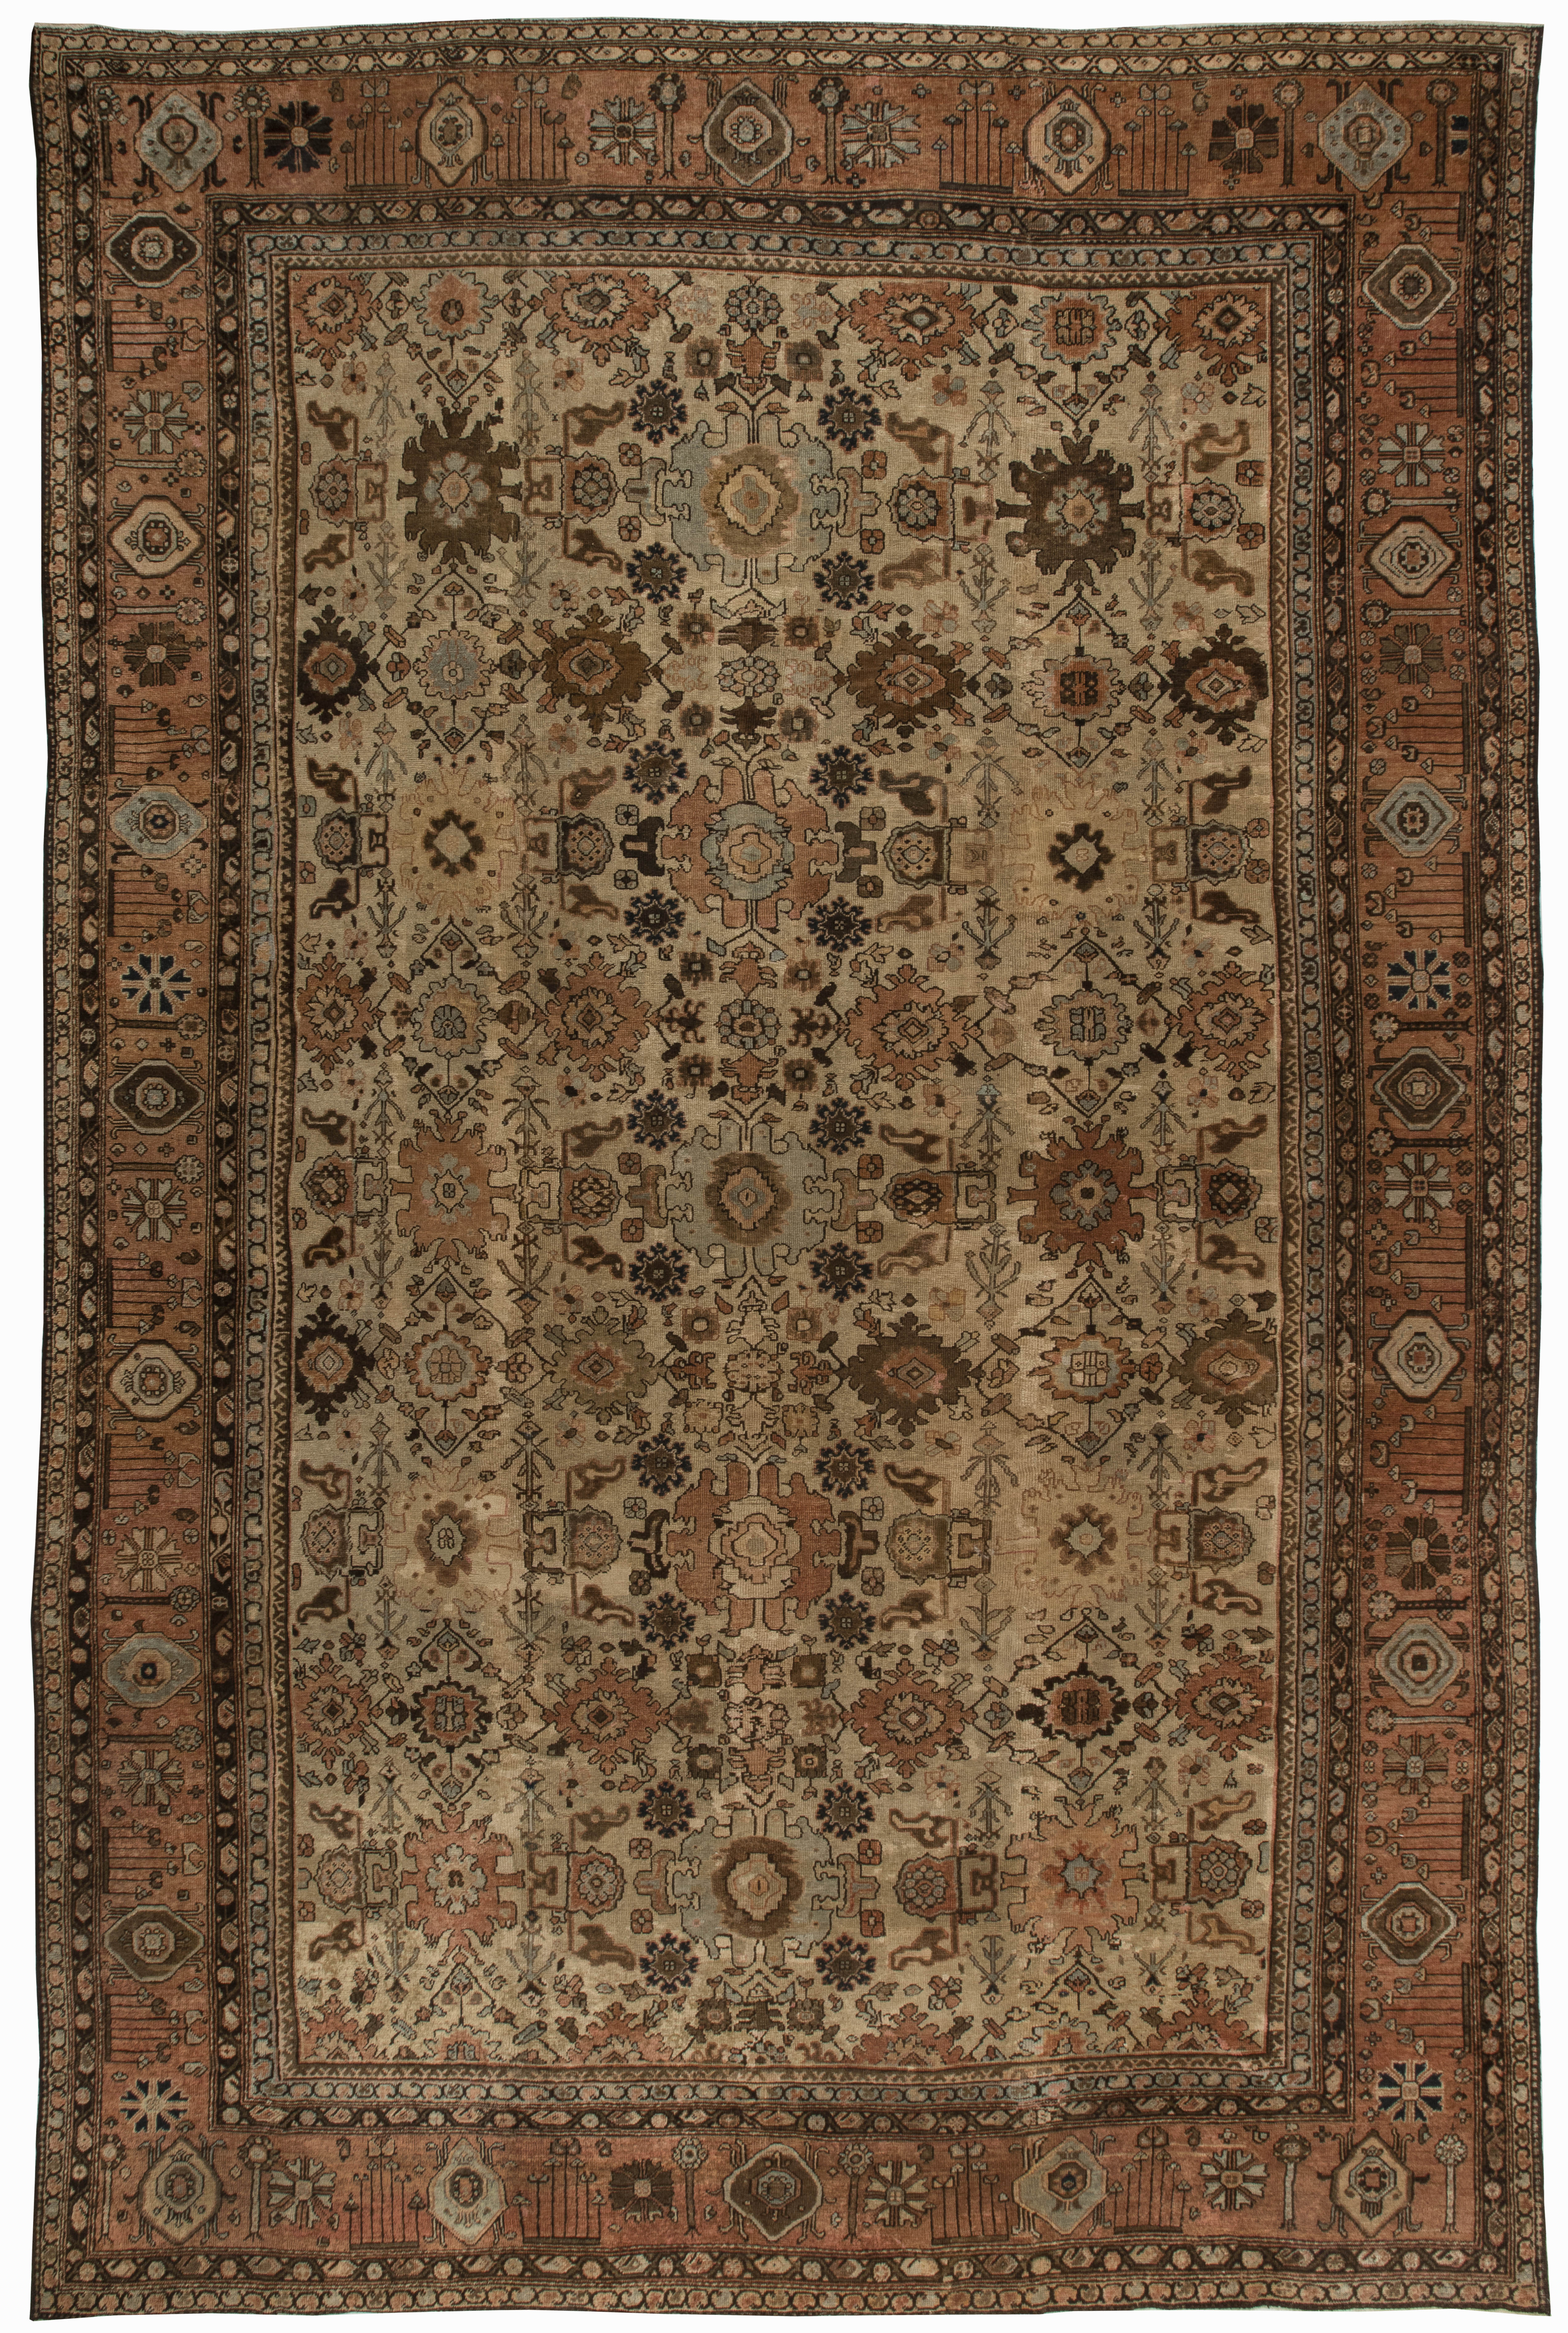 Sultanabad rugs carpets for sale antique oriental for Alfombras orientales antiguas